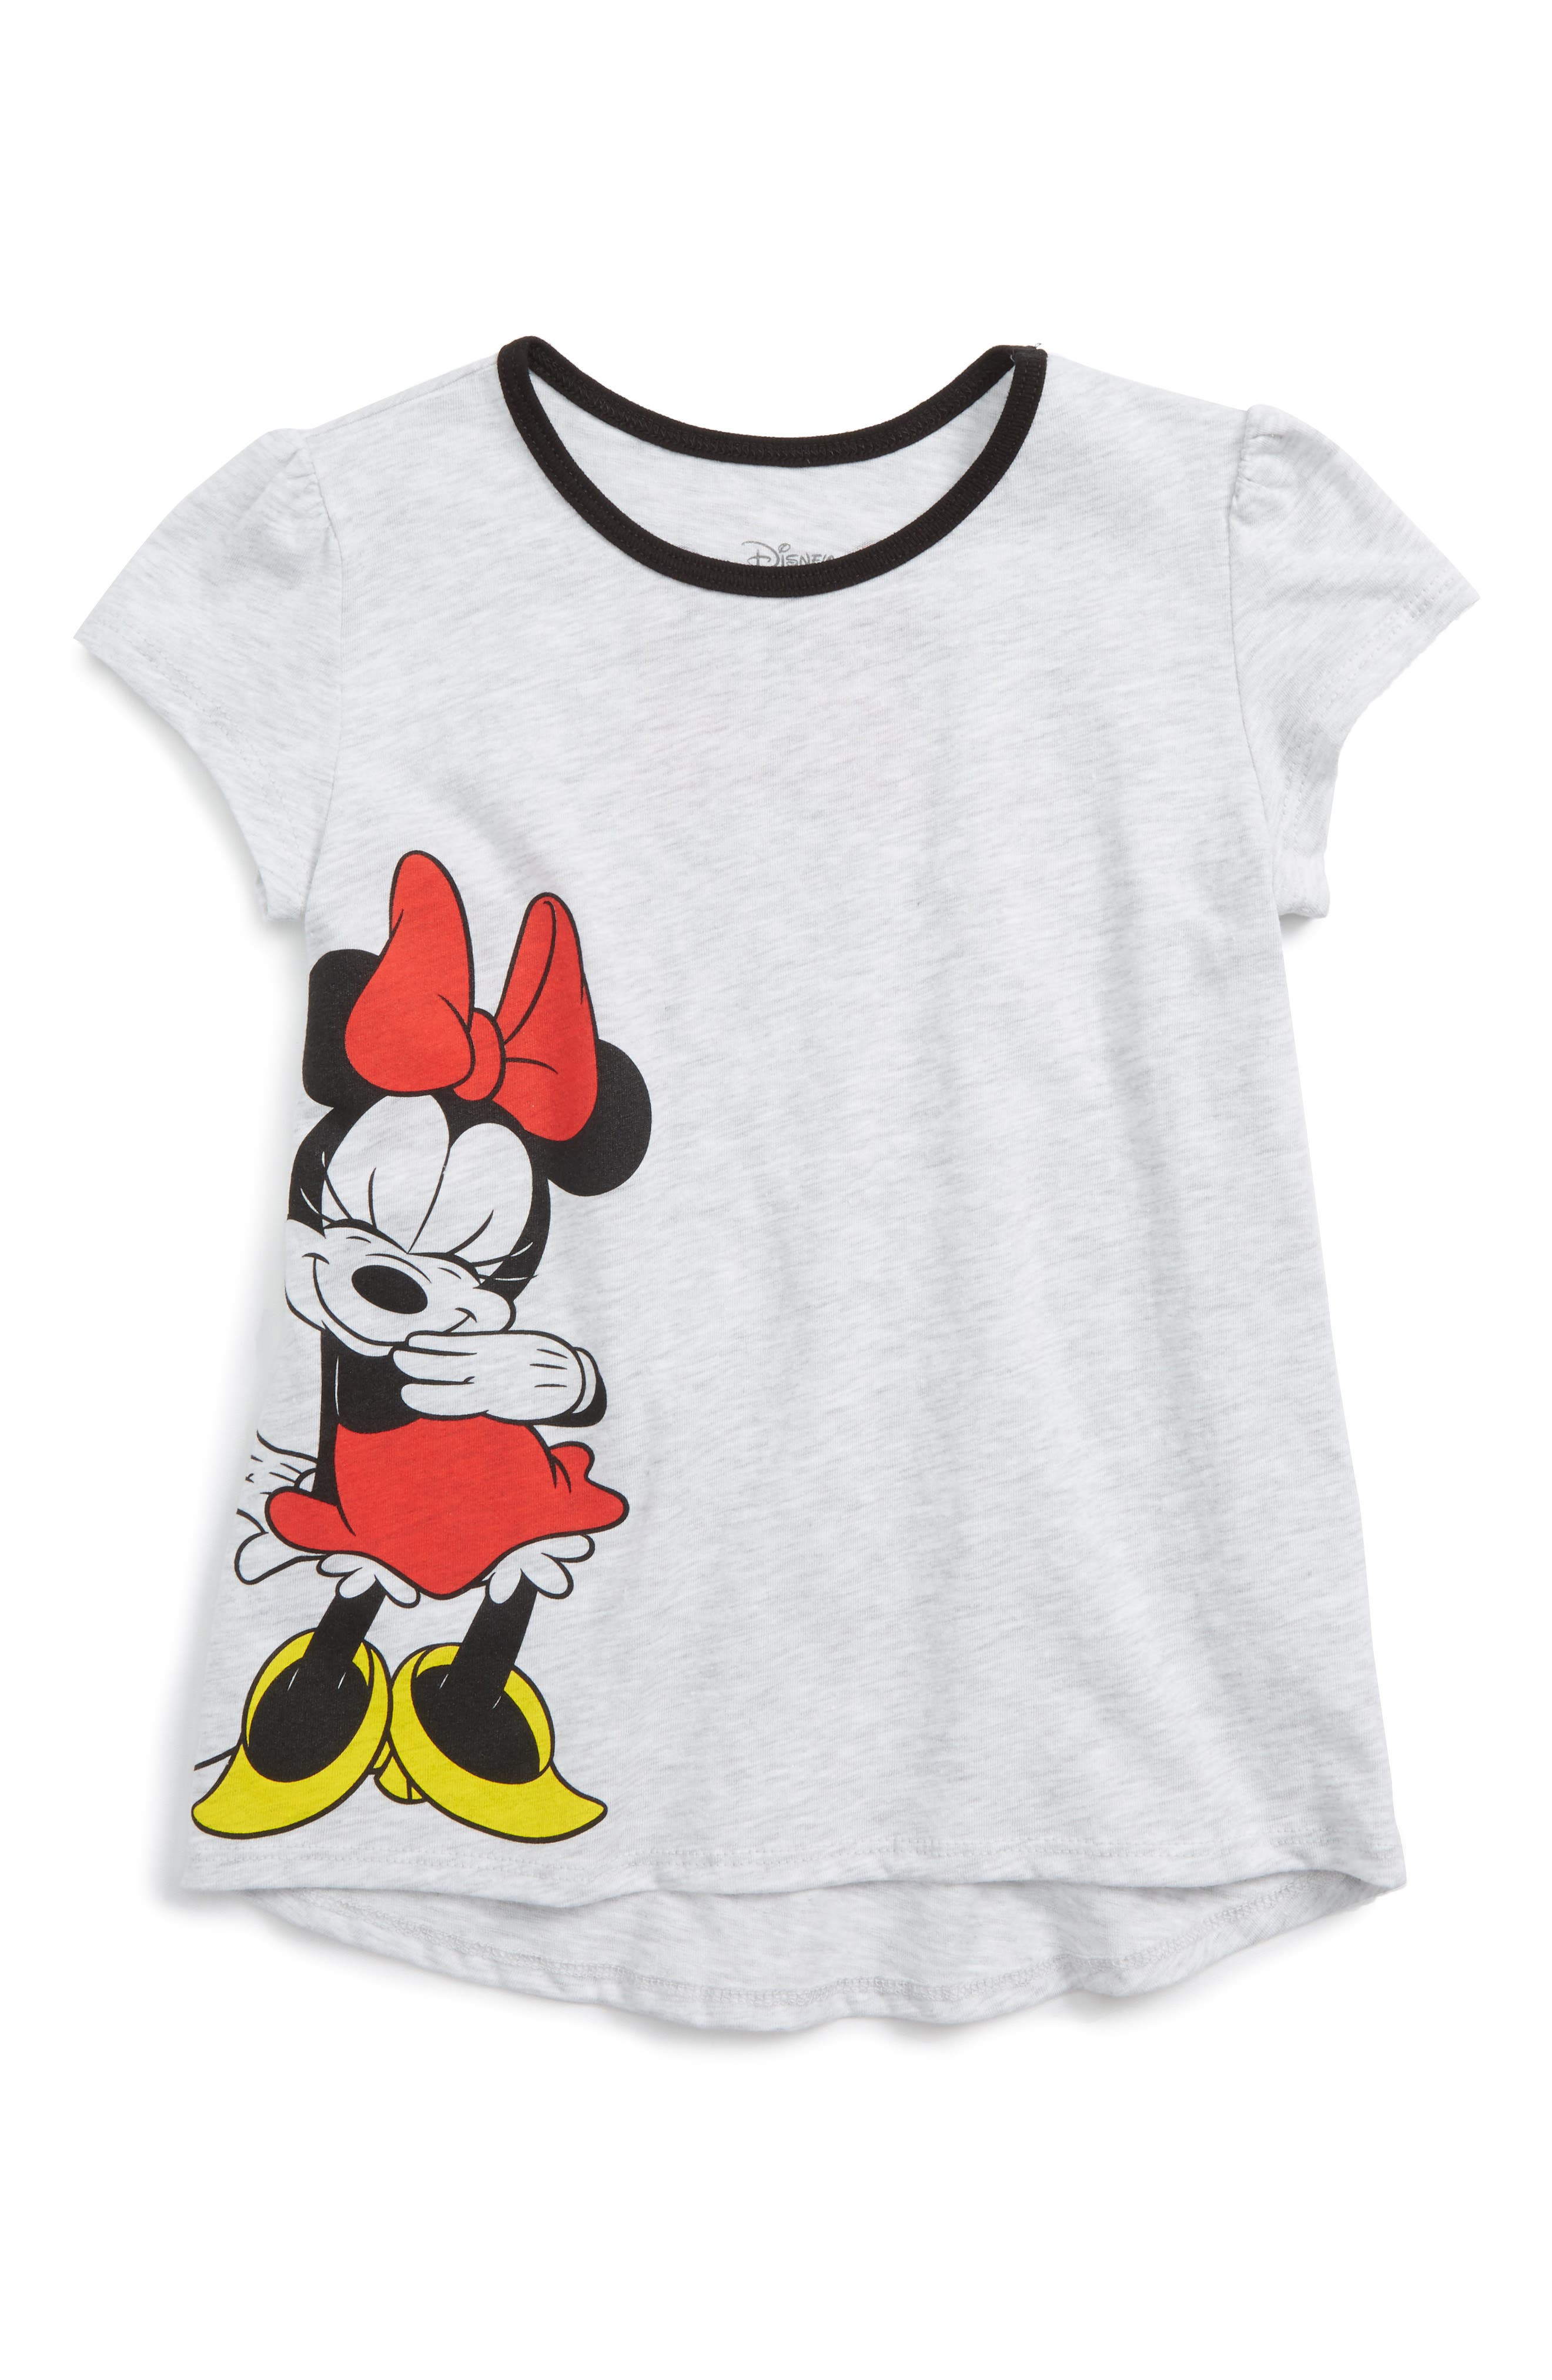 Mighty Fine Disney - Minnie Mouse Graphic Tee (Toddler Girls, Little Girls & Big Girls)